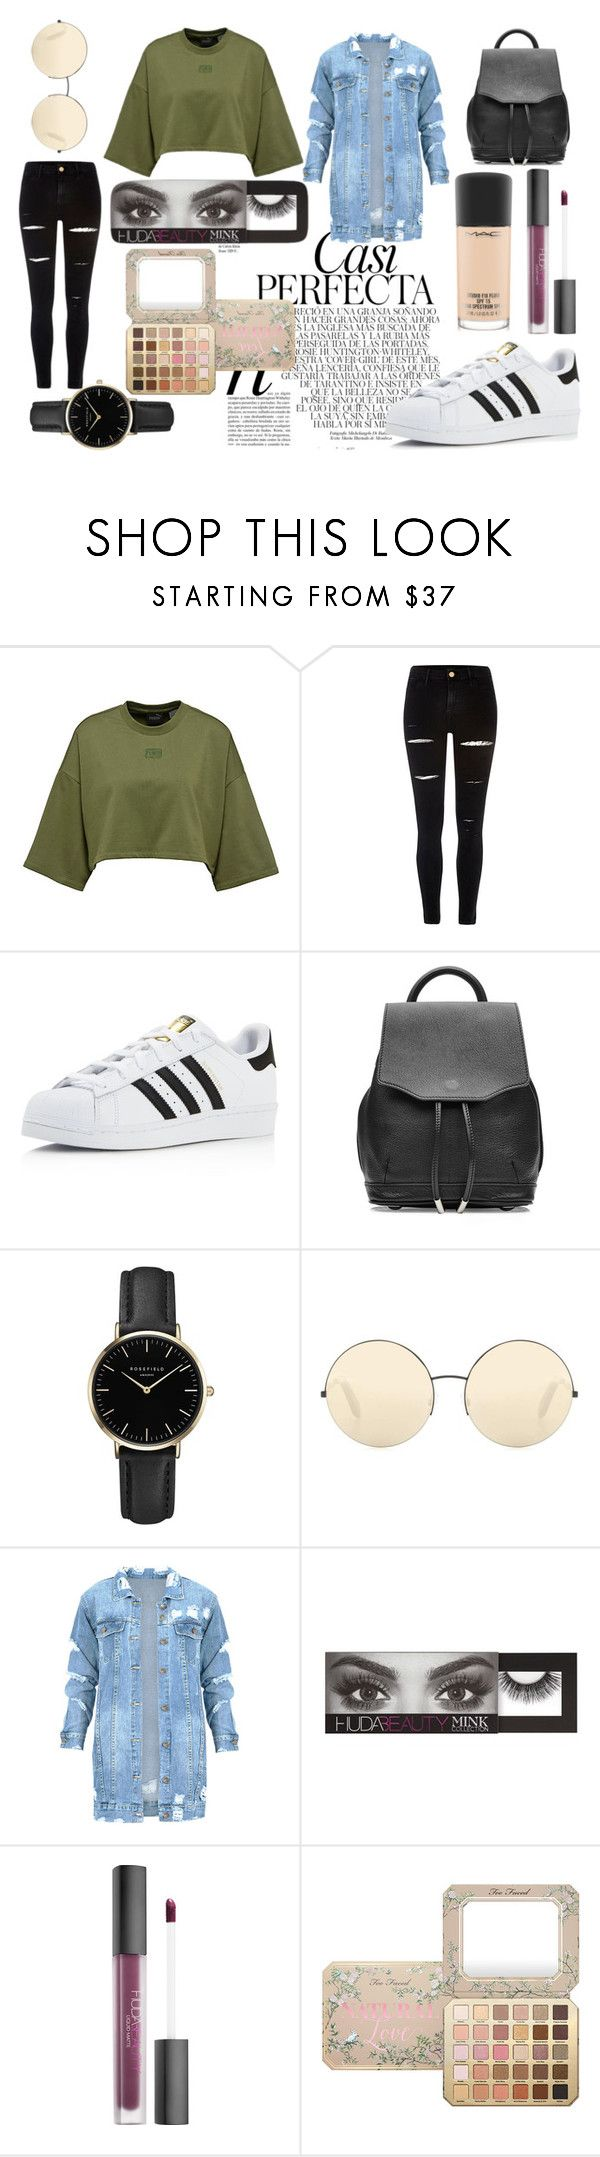 """Teen perfect look"" by isaline-de-soie on Polyvore featuring mode, River Island, Whiteley, adidas, rag & bone, ROSEFIELD, Victoria Beckham, Huda Beauty et MAC Cosmetics"